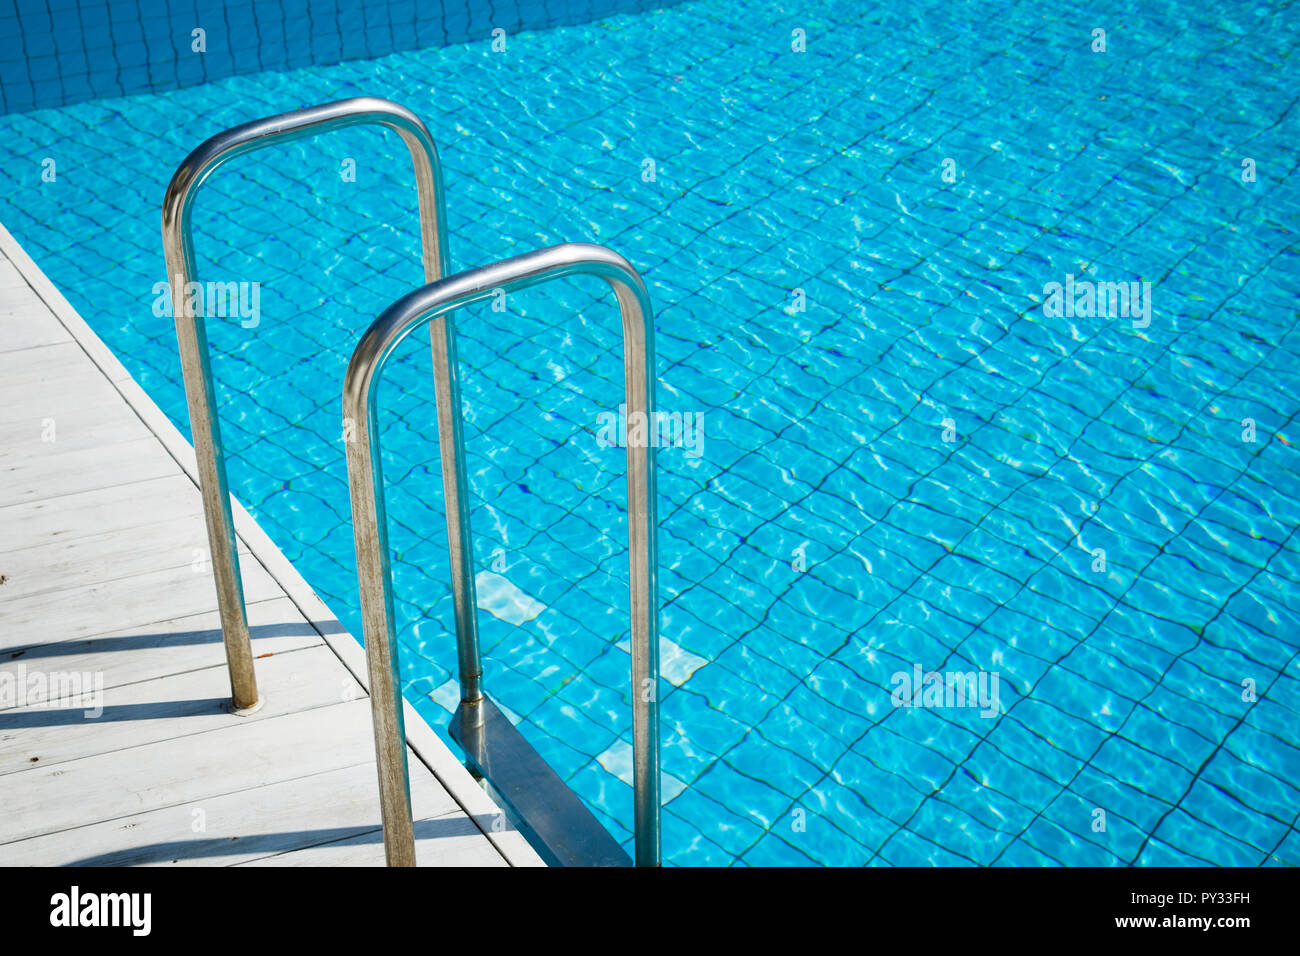 Summer holiday concept photo. vacation items and beach accessories in swimming pool or yellow background. 122 - Stock Image